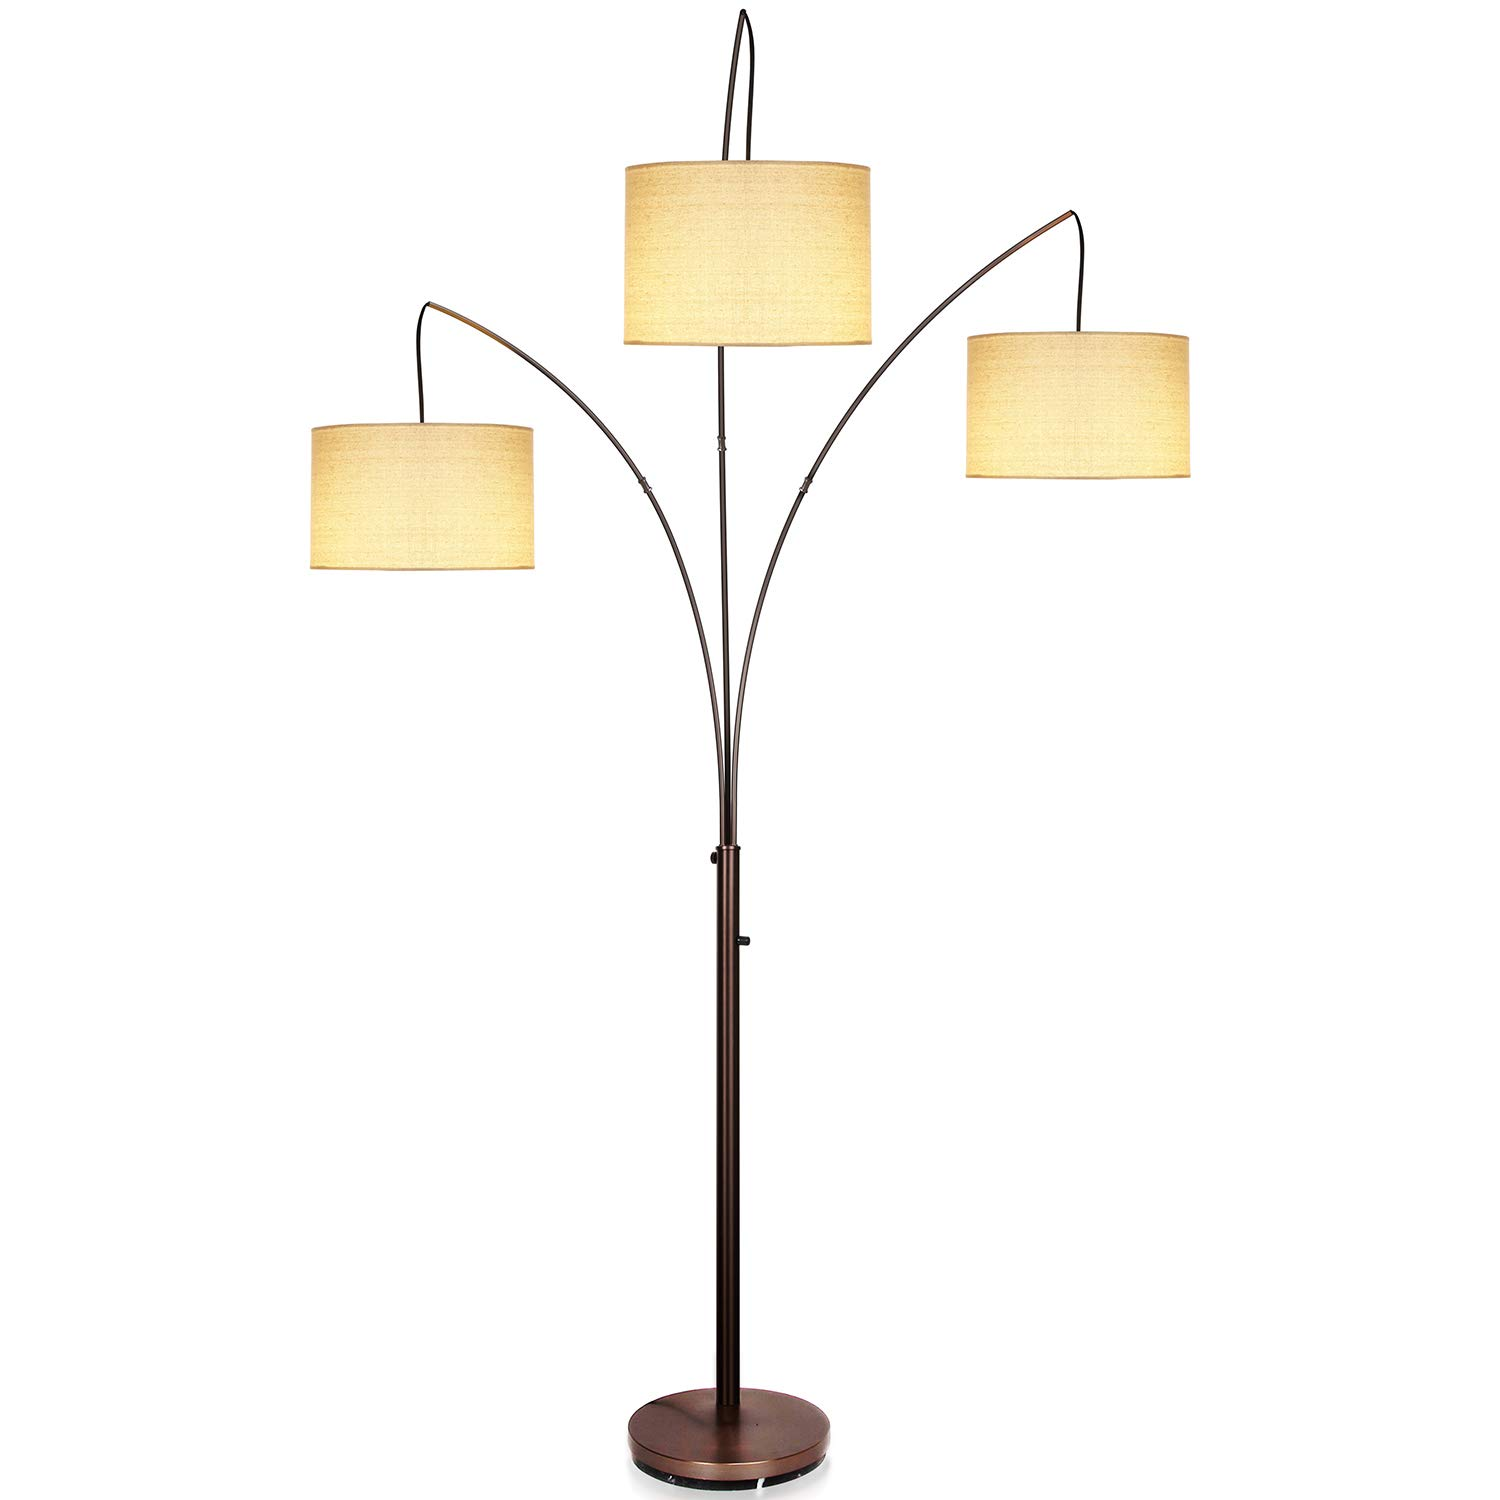 Brightech Trilage - Modern LED Arc Floor Lamp with Marble Base – Free Standing Behind The Couch Lamp for Living Room - 3 Hanging Lights, Great for Reading - Oil Rubbed Bronze